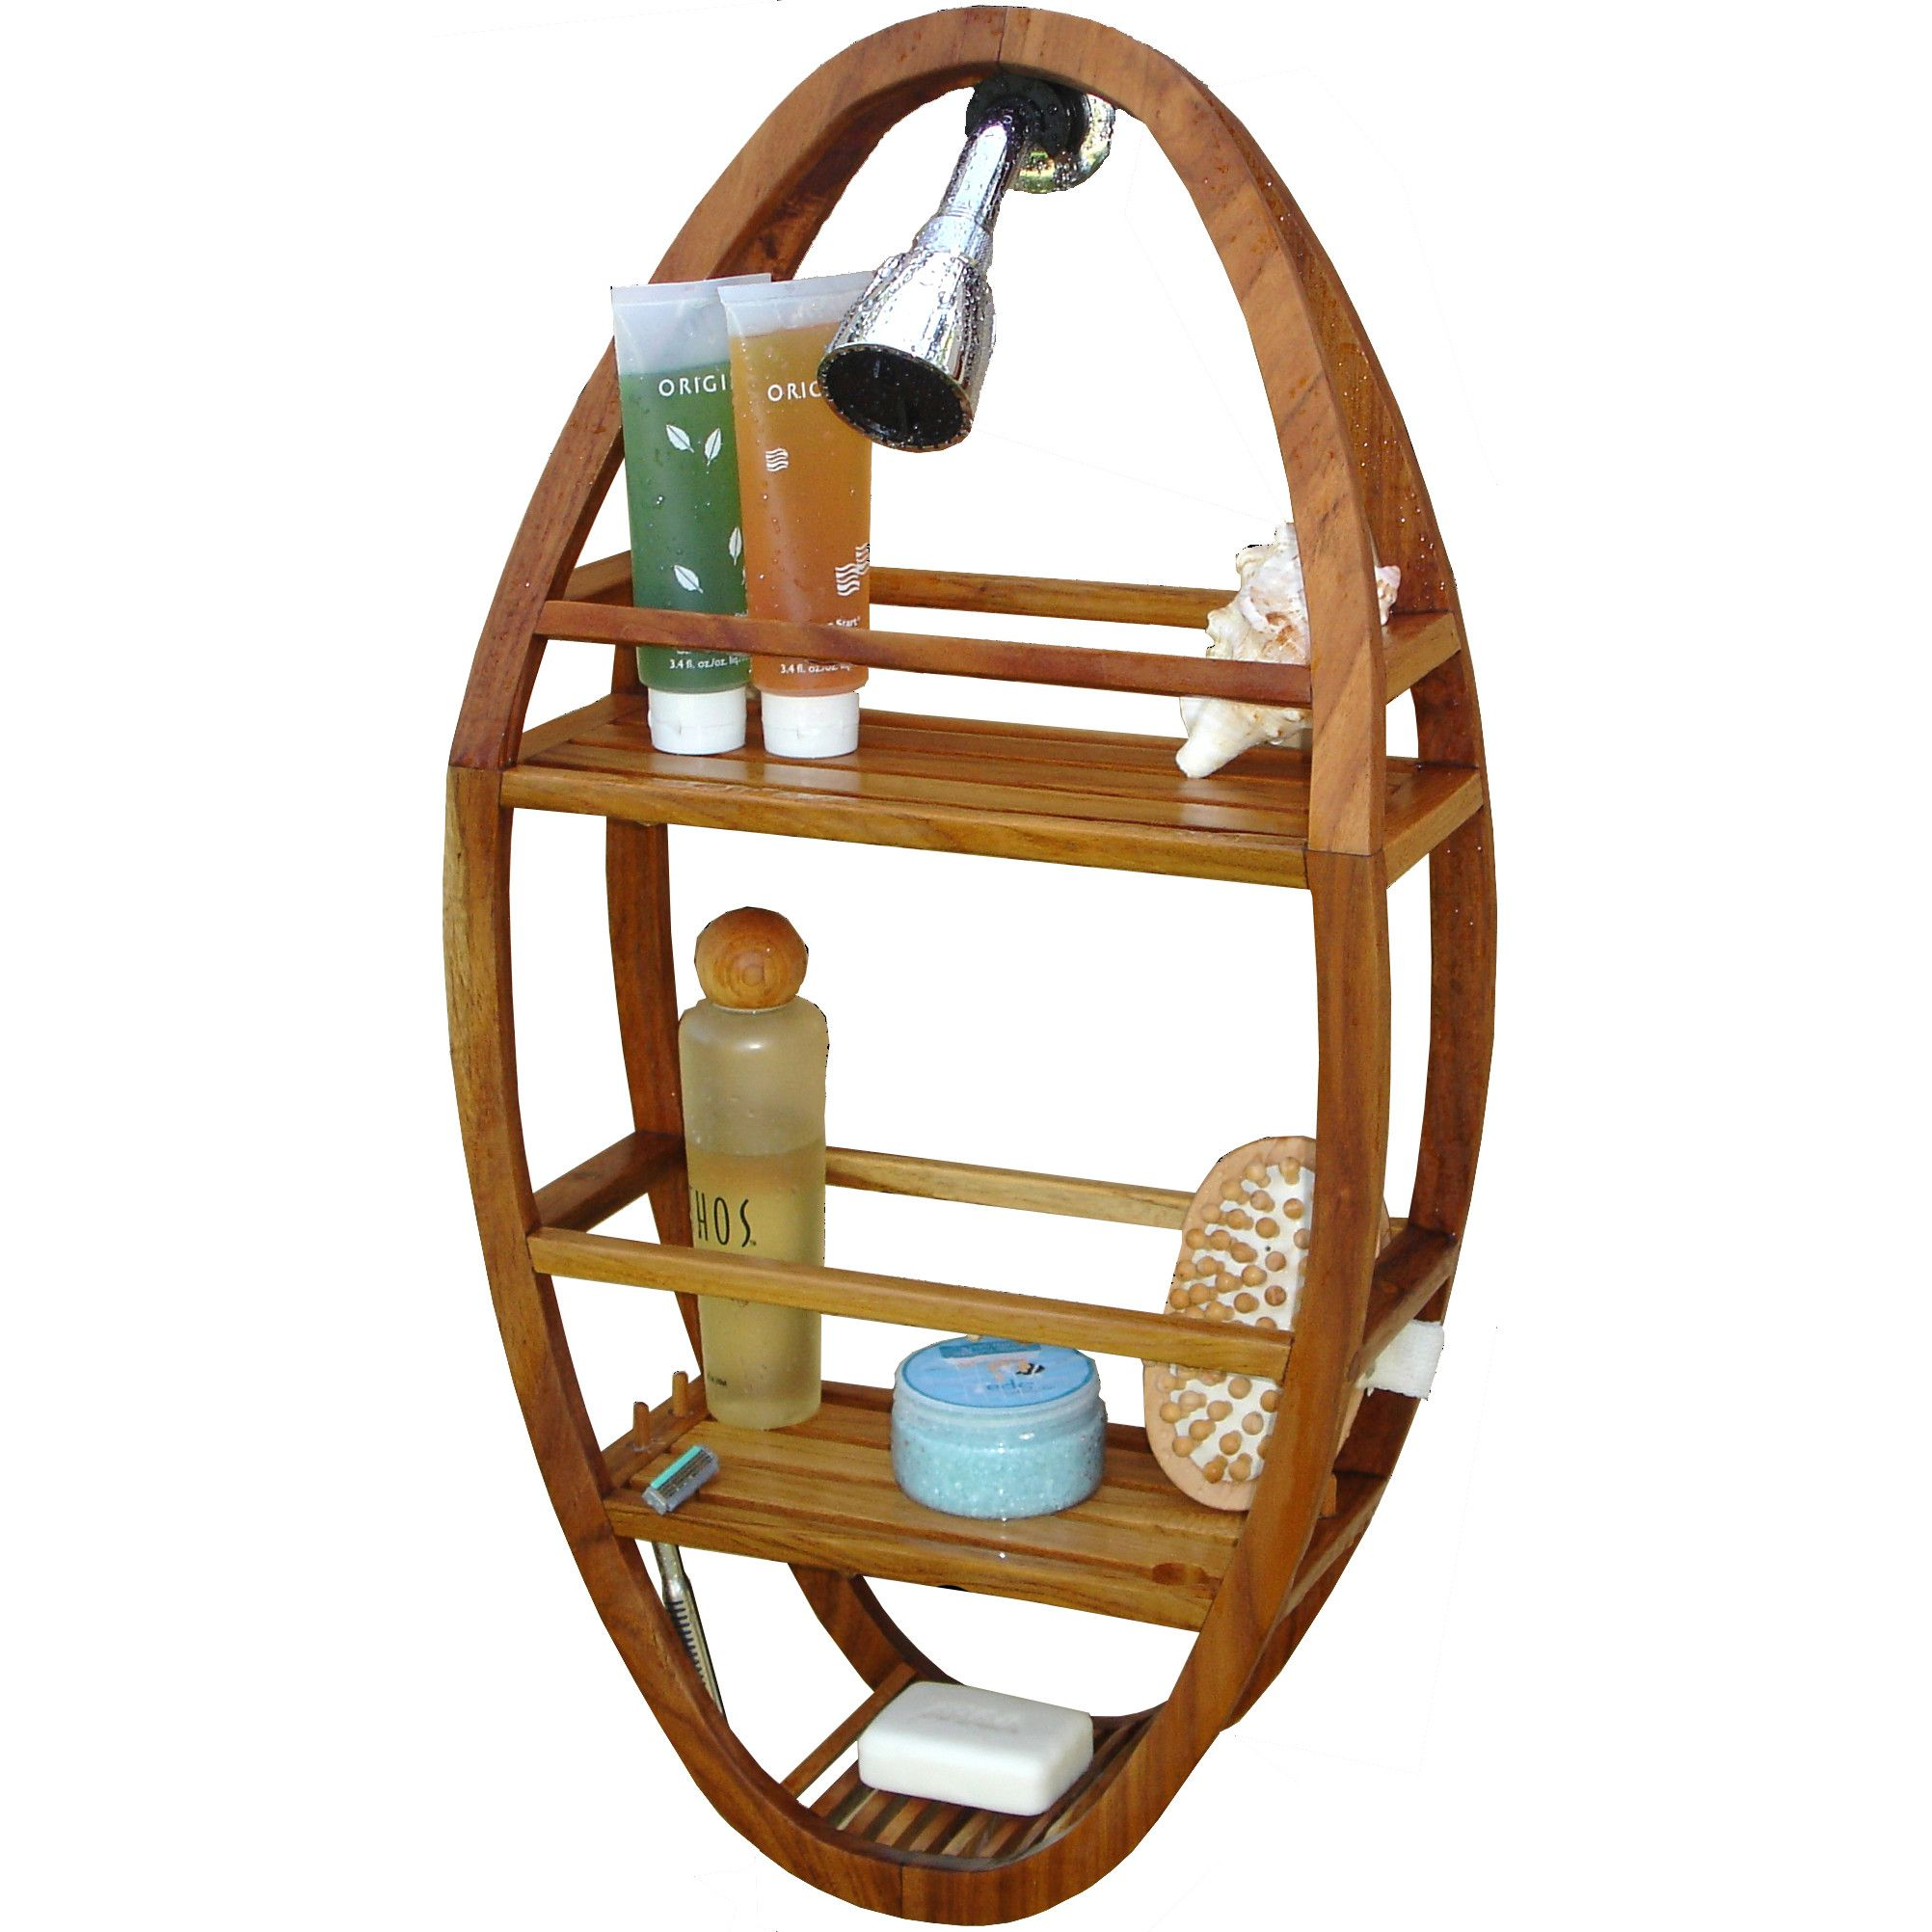 bench for image belham top shower caddy ac using disadvantages folding teak hayneedle benches divine ae lattice of the regard down sauna to fold living and stool bath wood advantages with